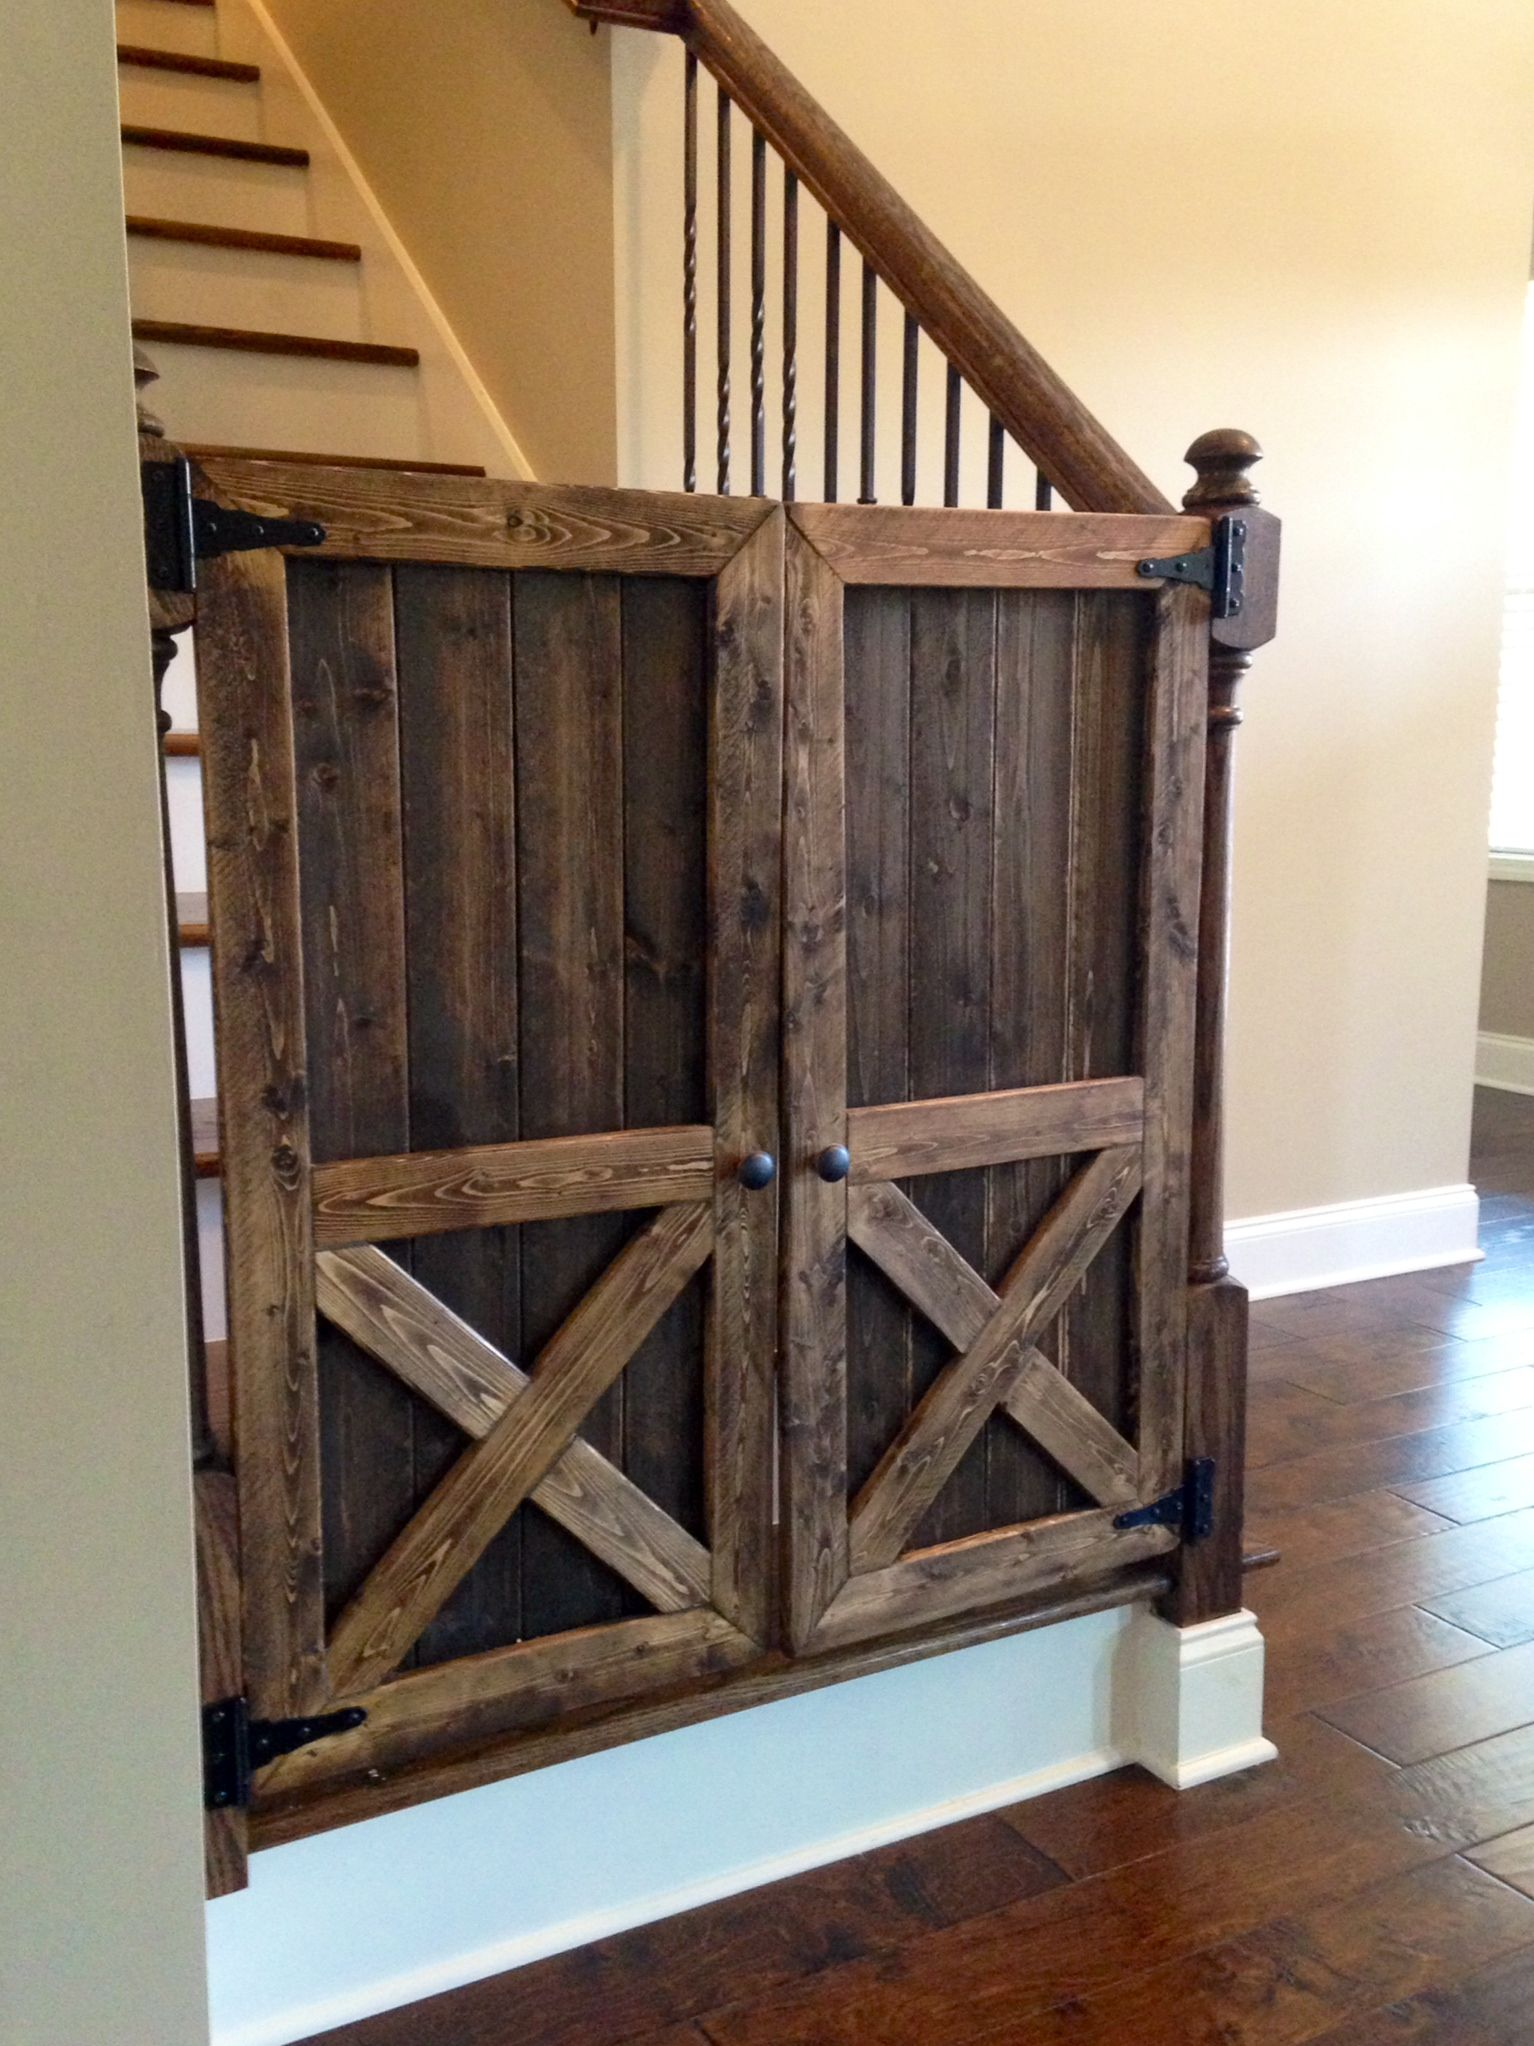 Barn Door Baby Gates For The Home Pinterest